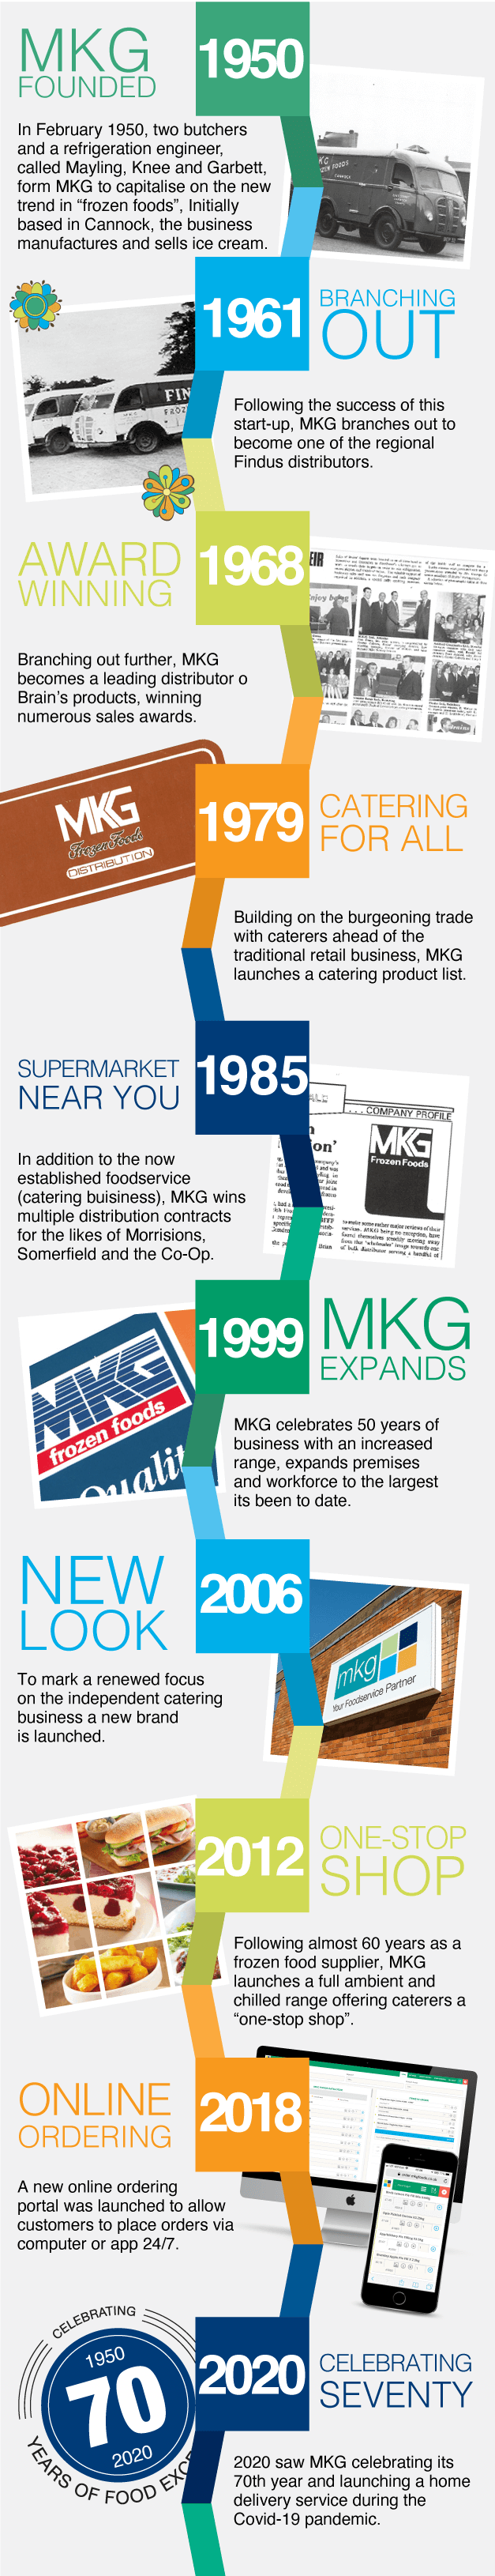 MKG Foods Timeline graphic